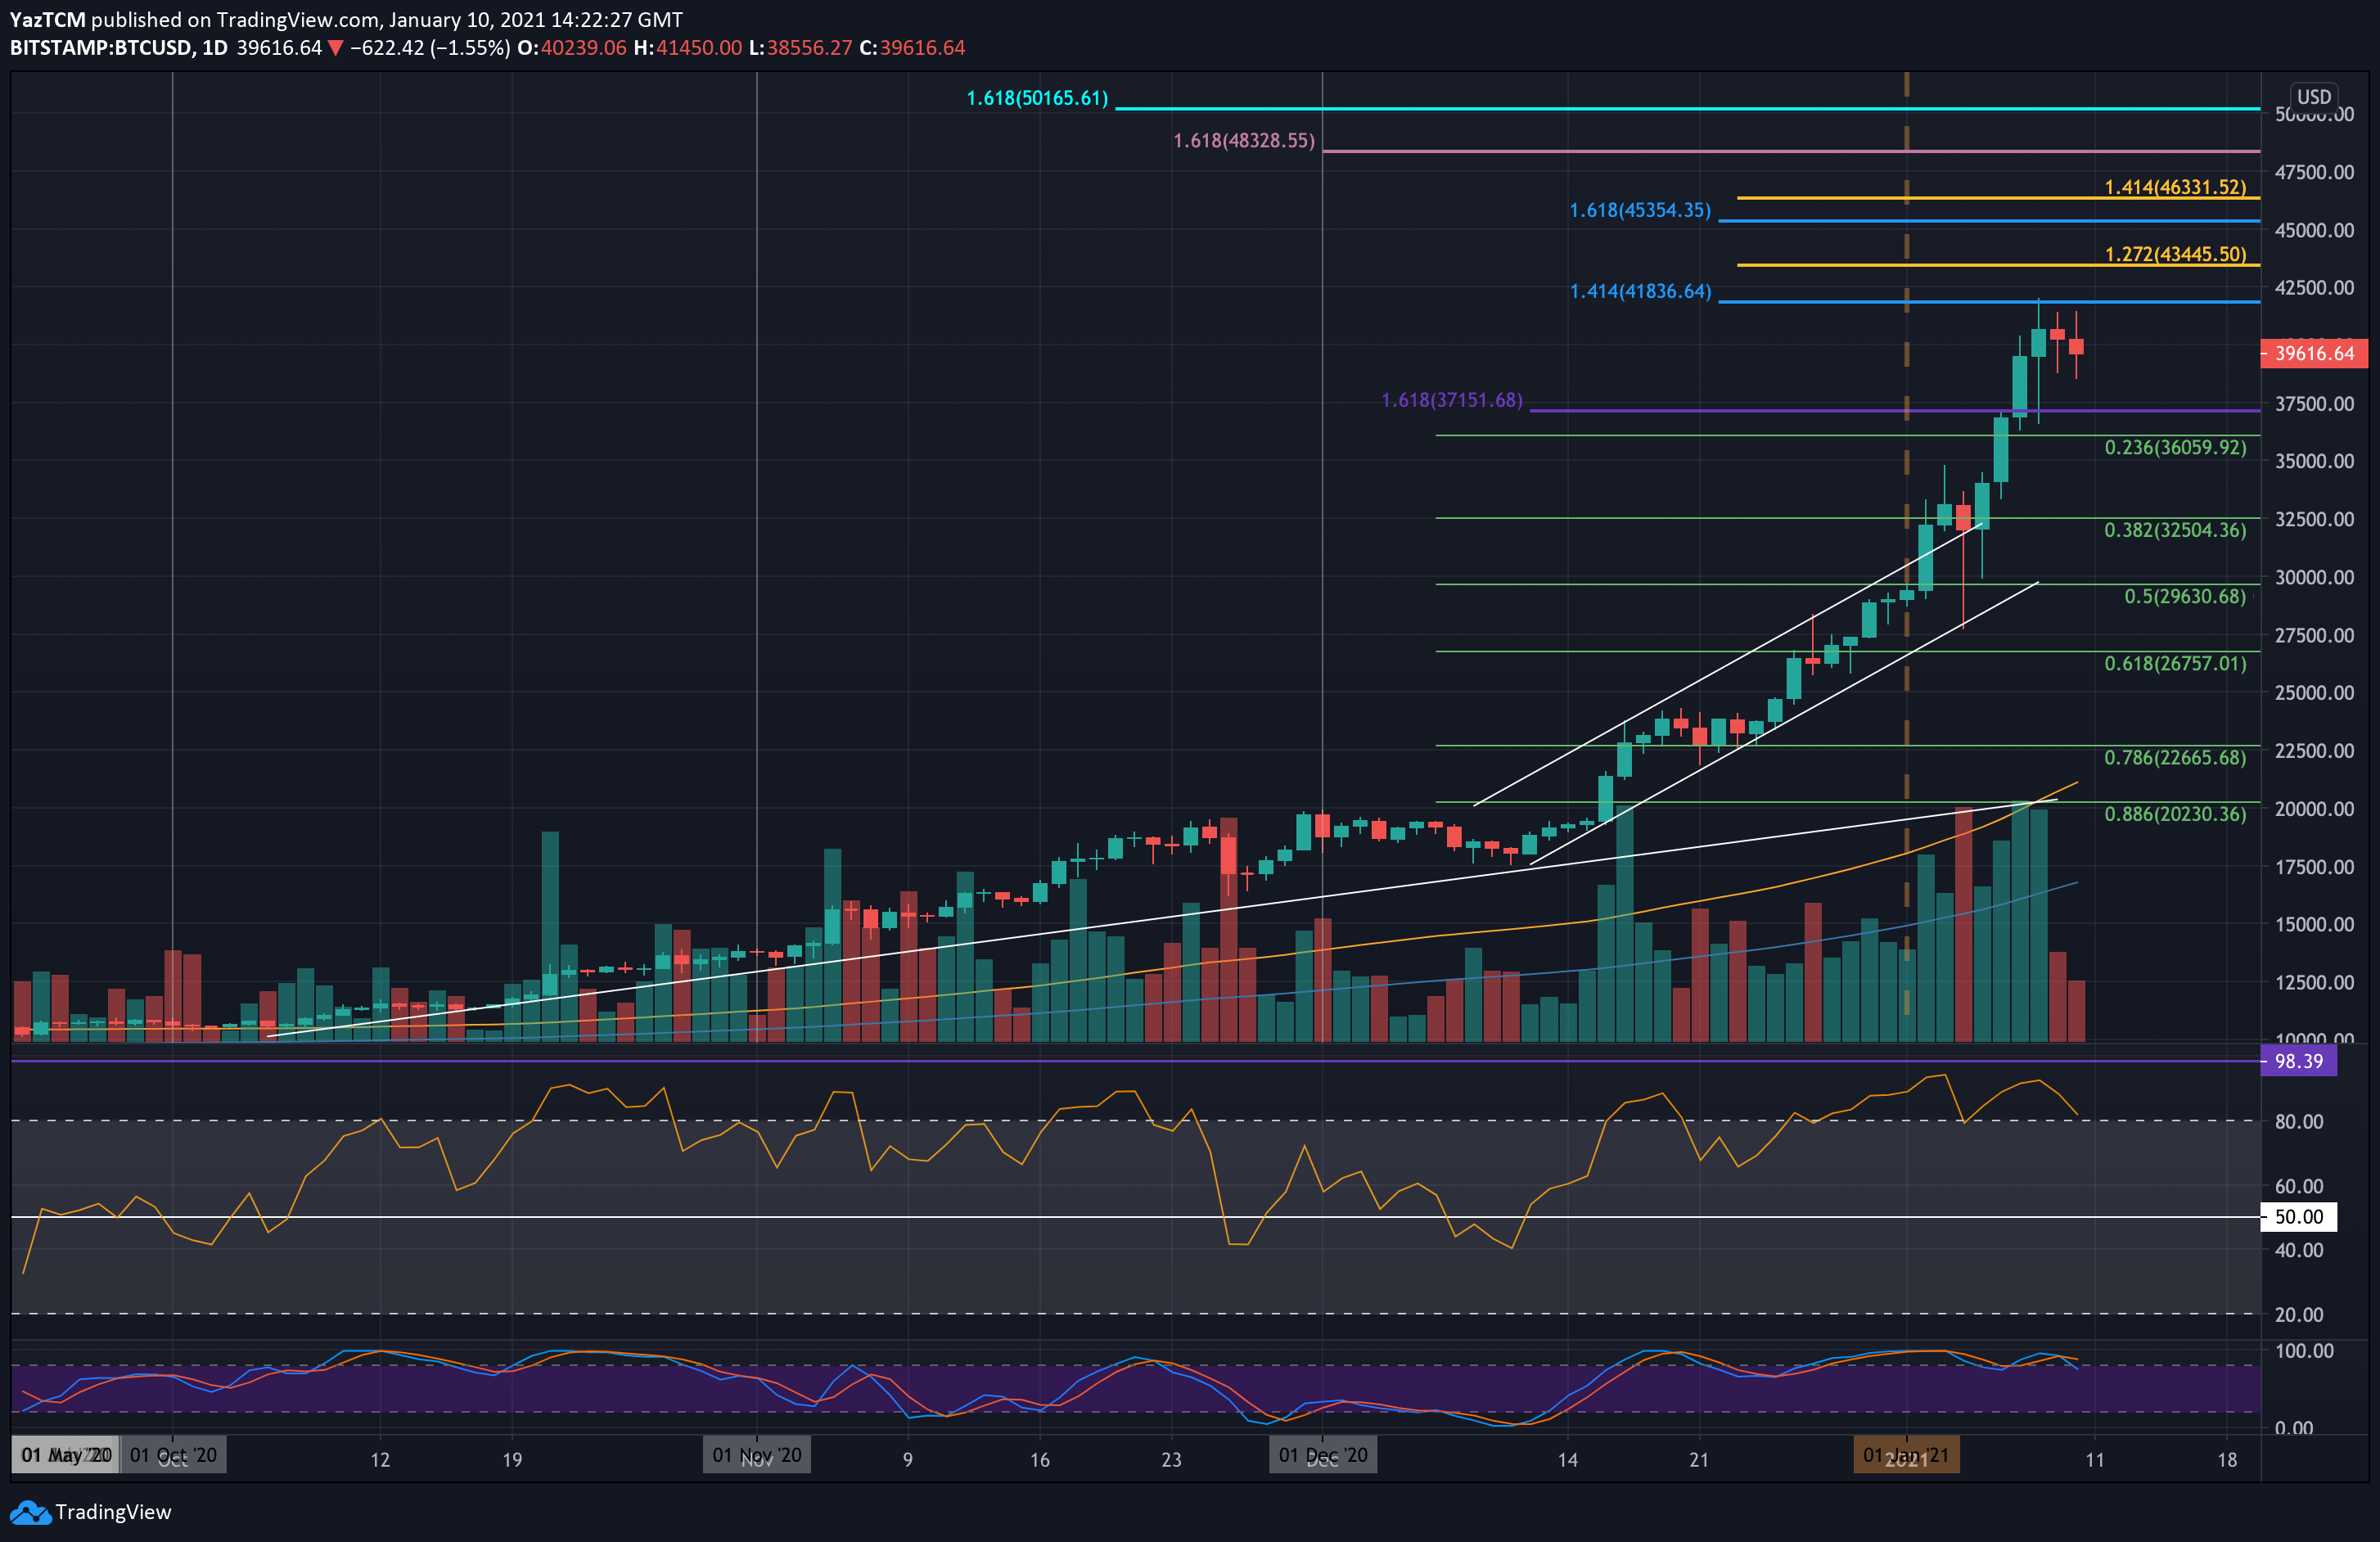 Bitcoin Price Analysis: Following $2500 Correction, Will BTC Retest $34K Before a New ATH?